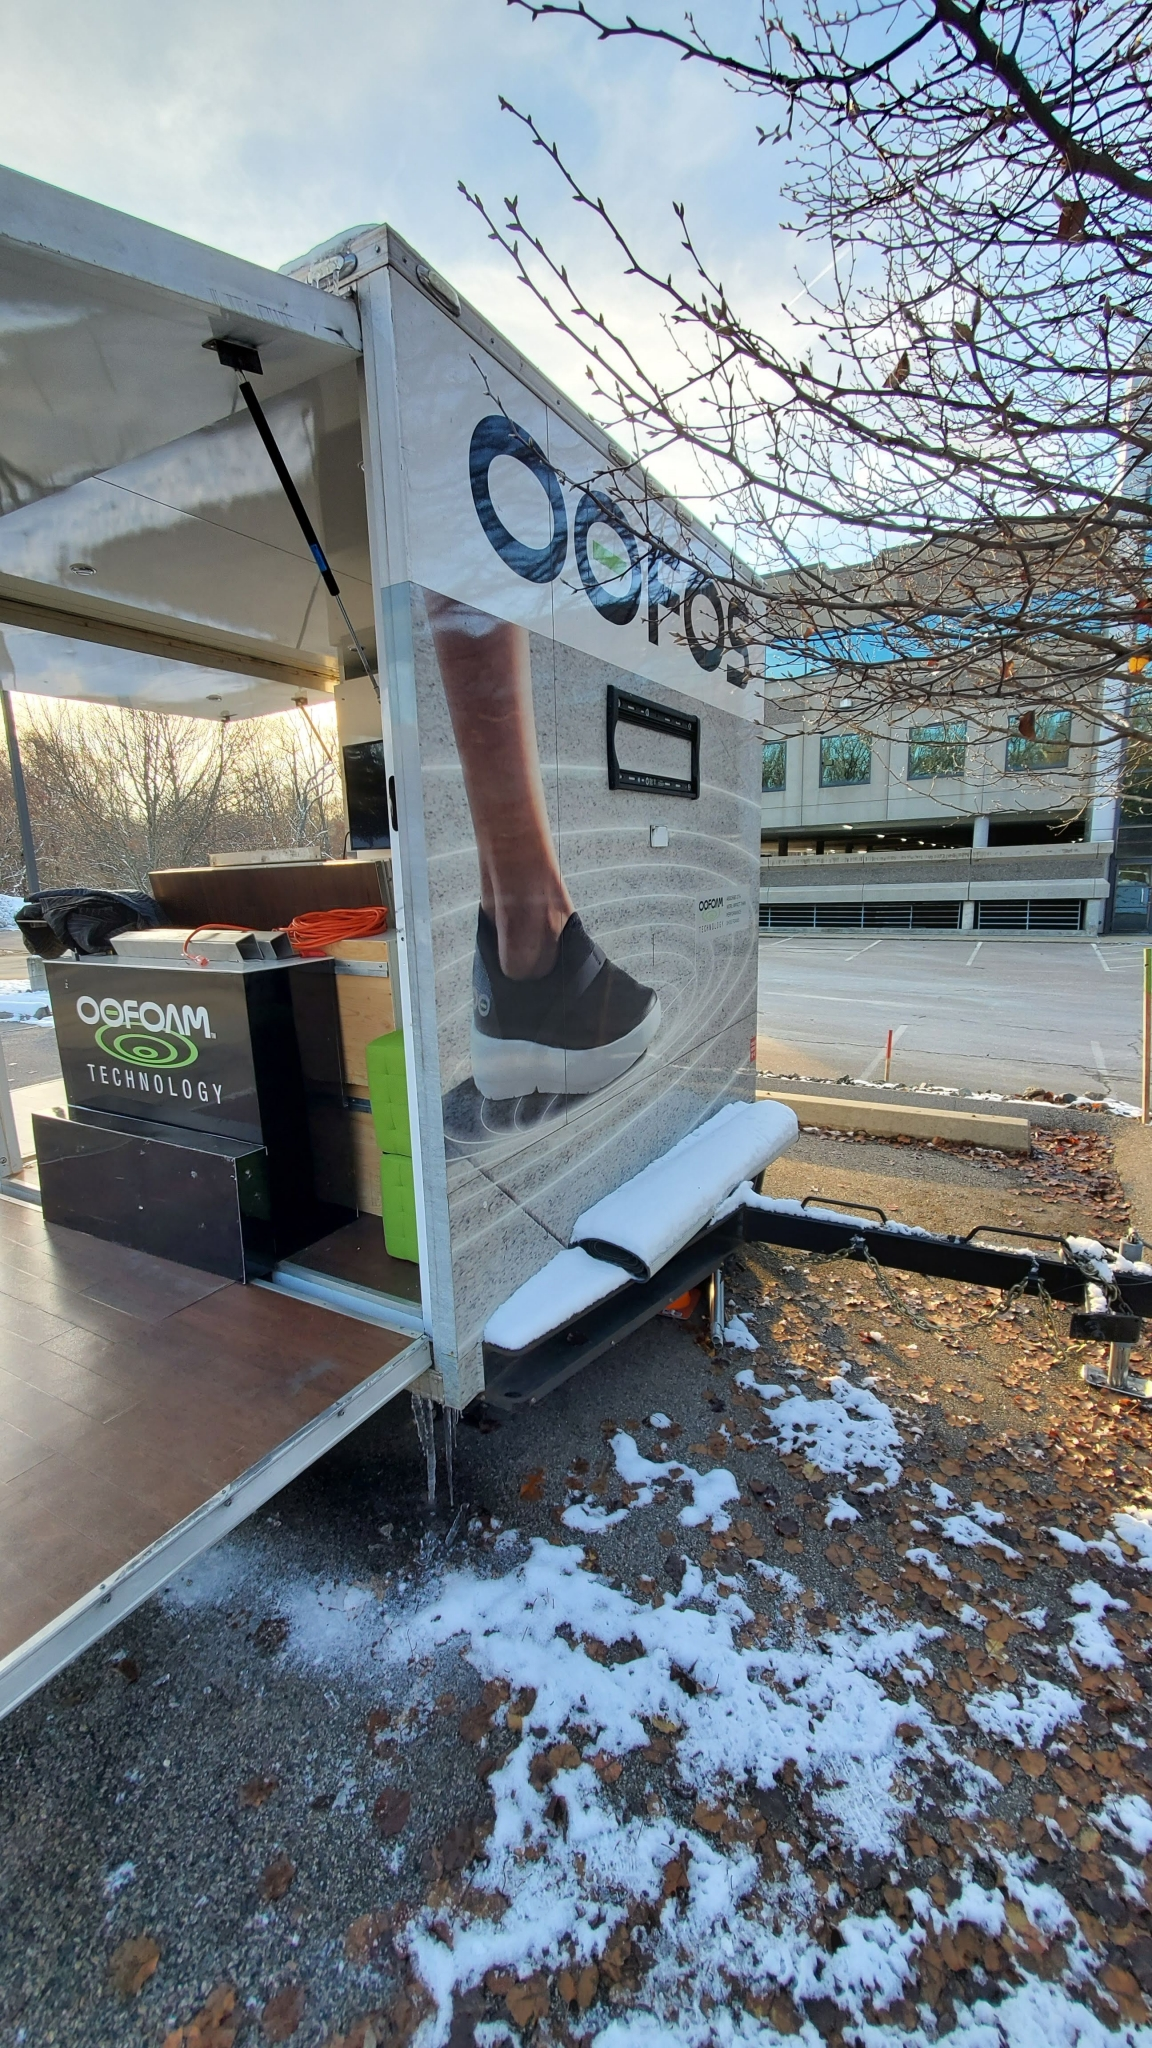 Small Mobile Pop-up Store front